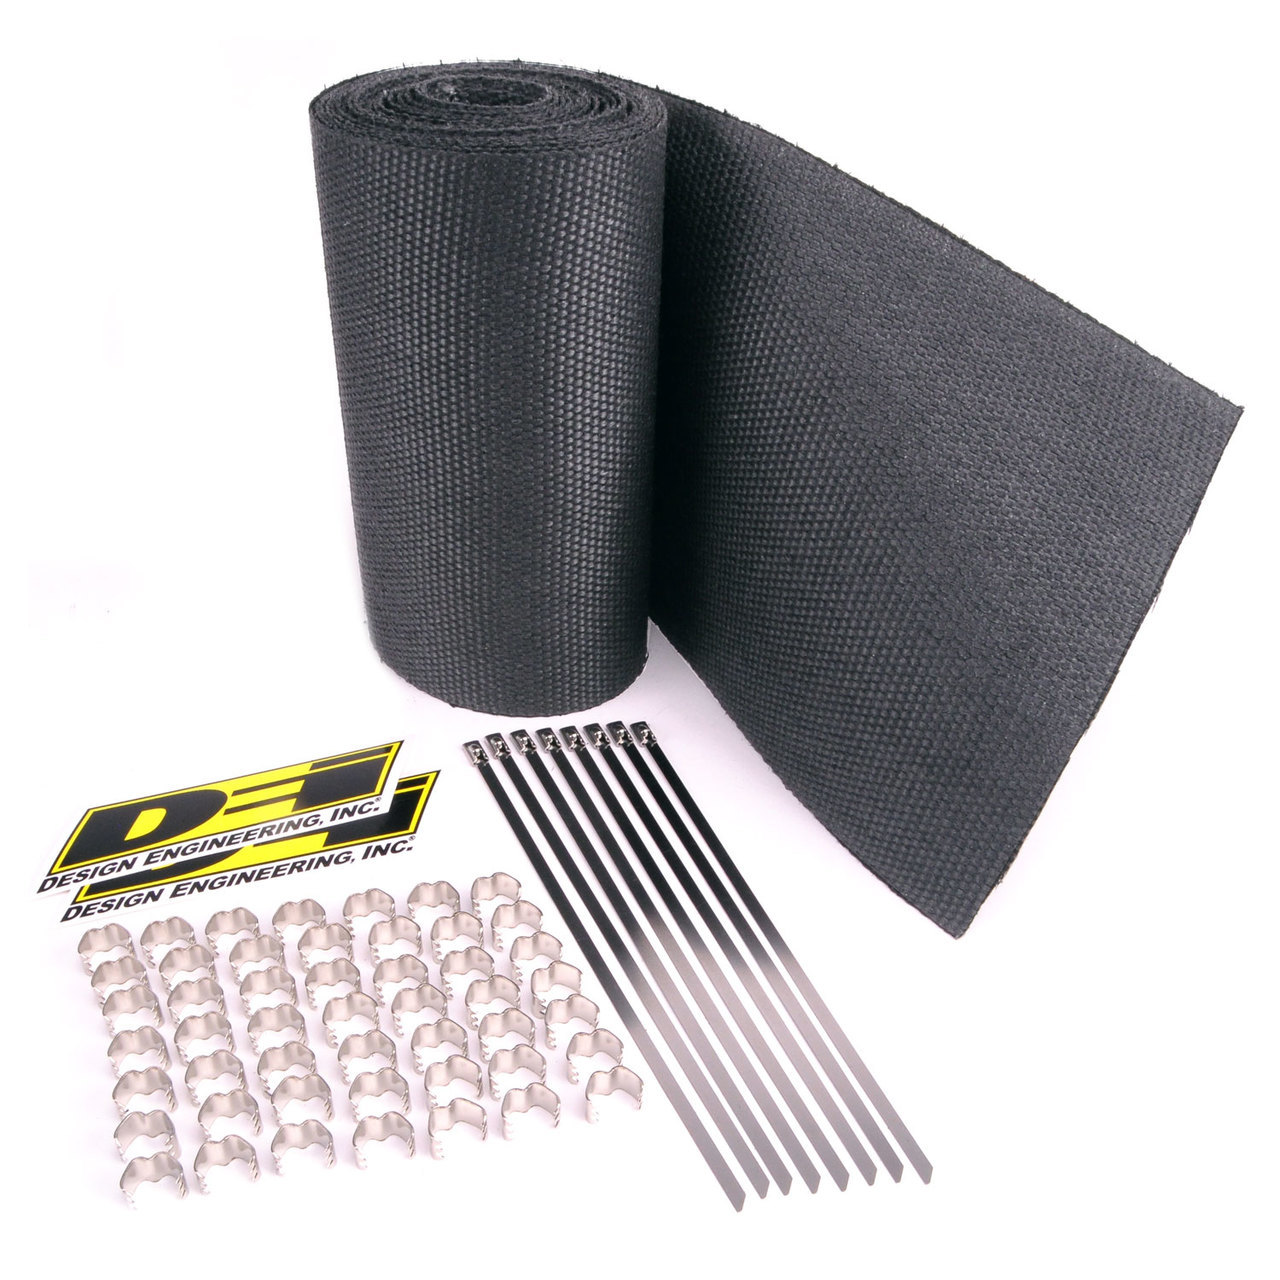 010114 Speed Sleeves (Exhaust Jackets) for 4, 6, 8 cylinder vehicles